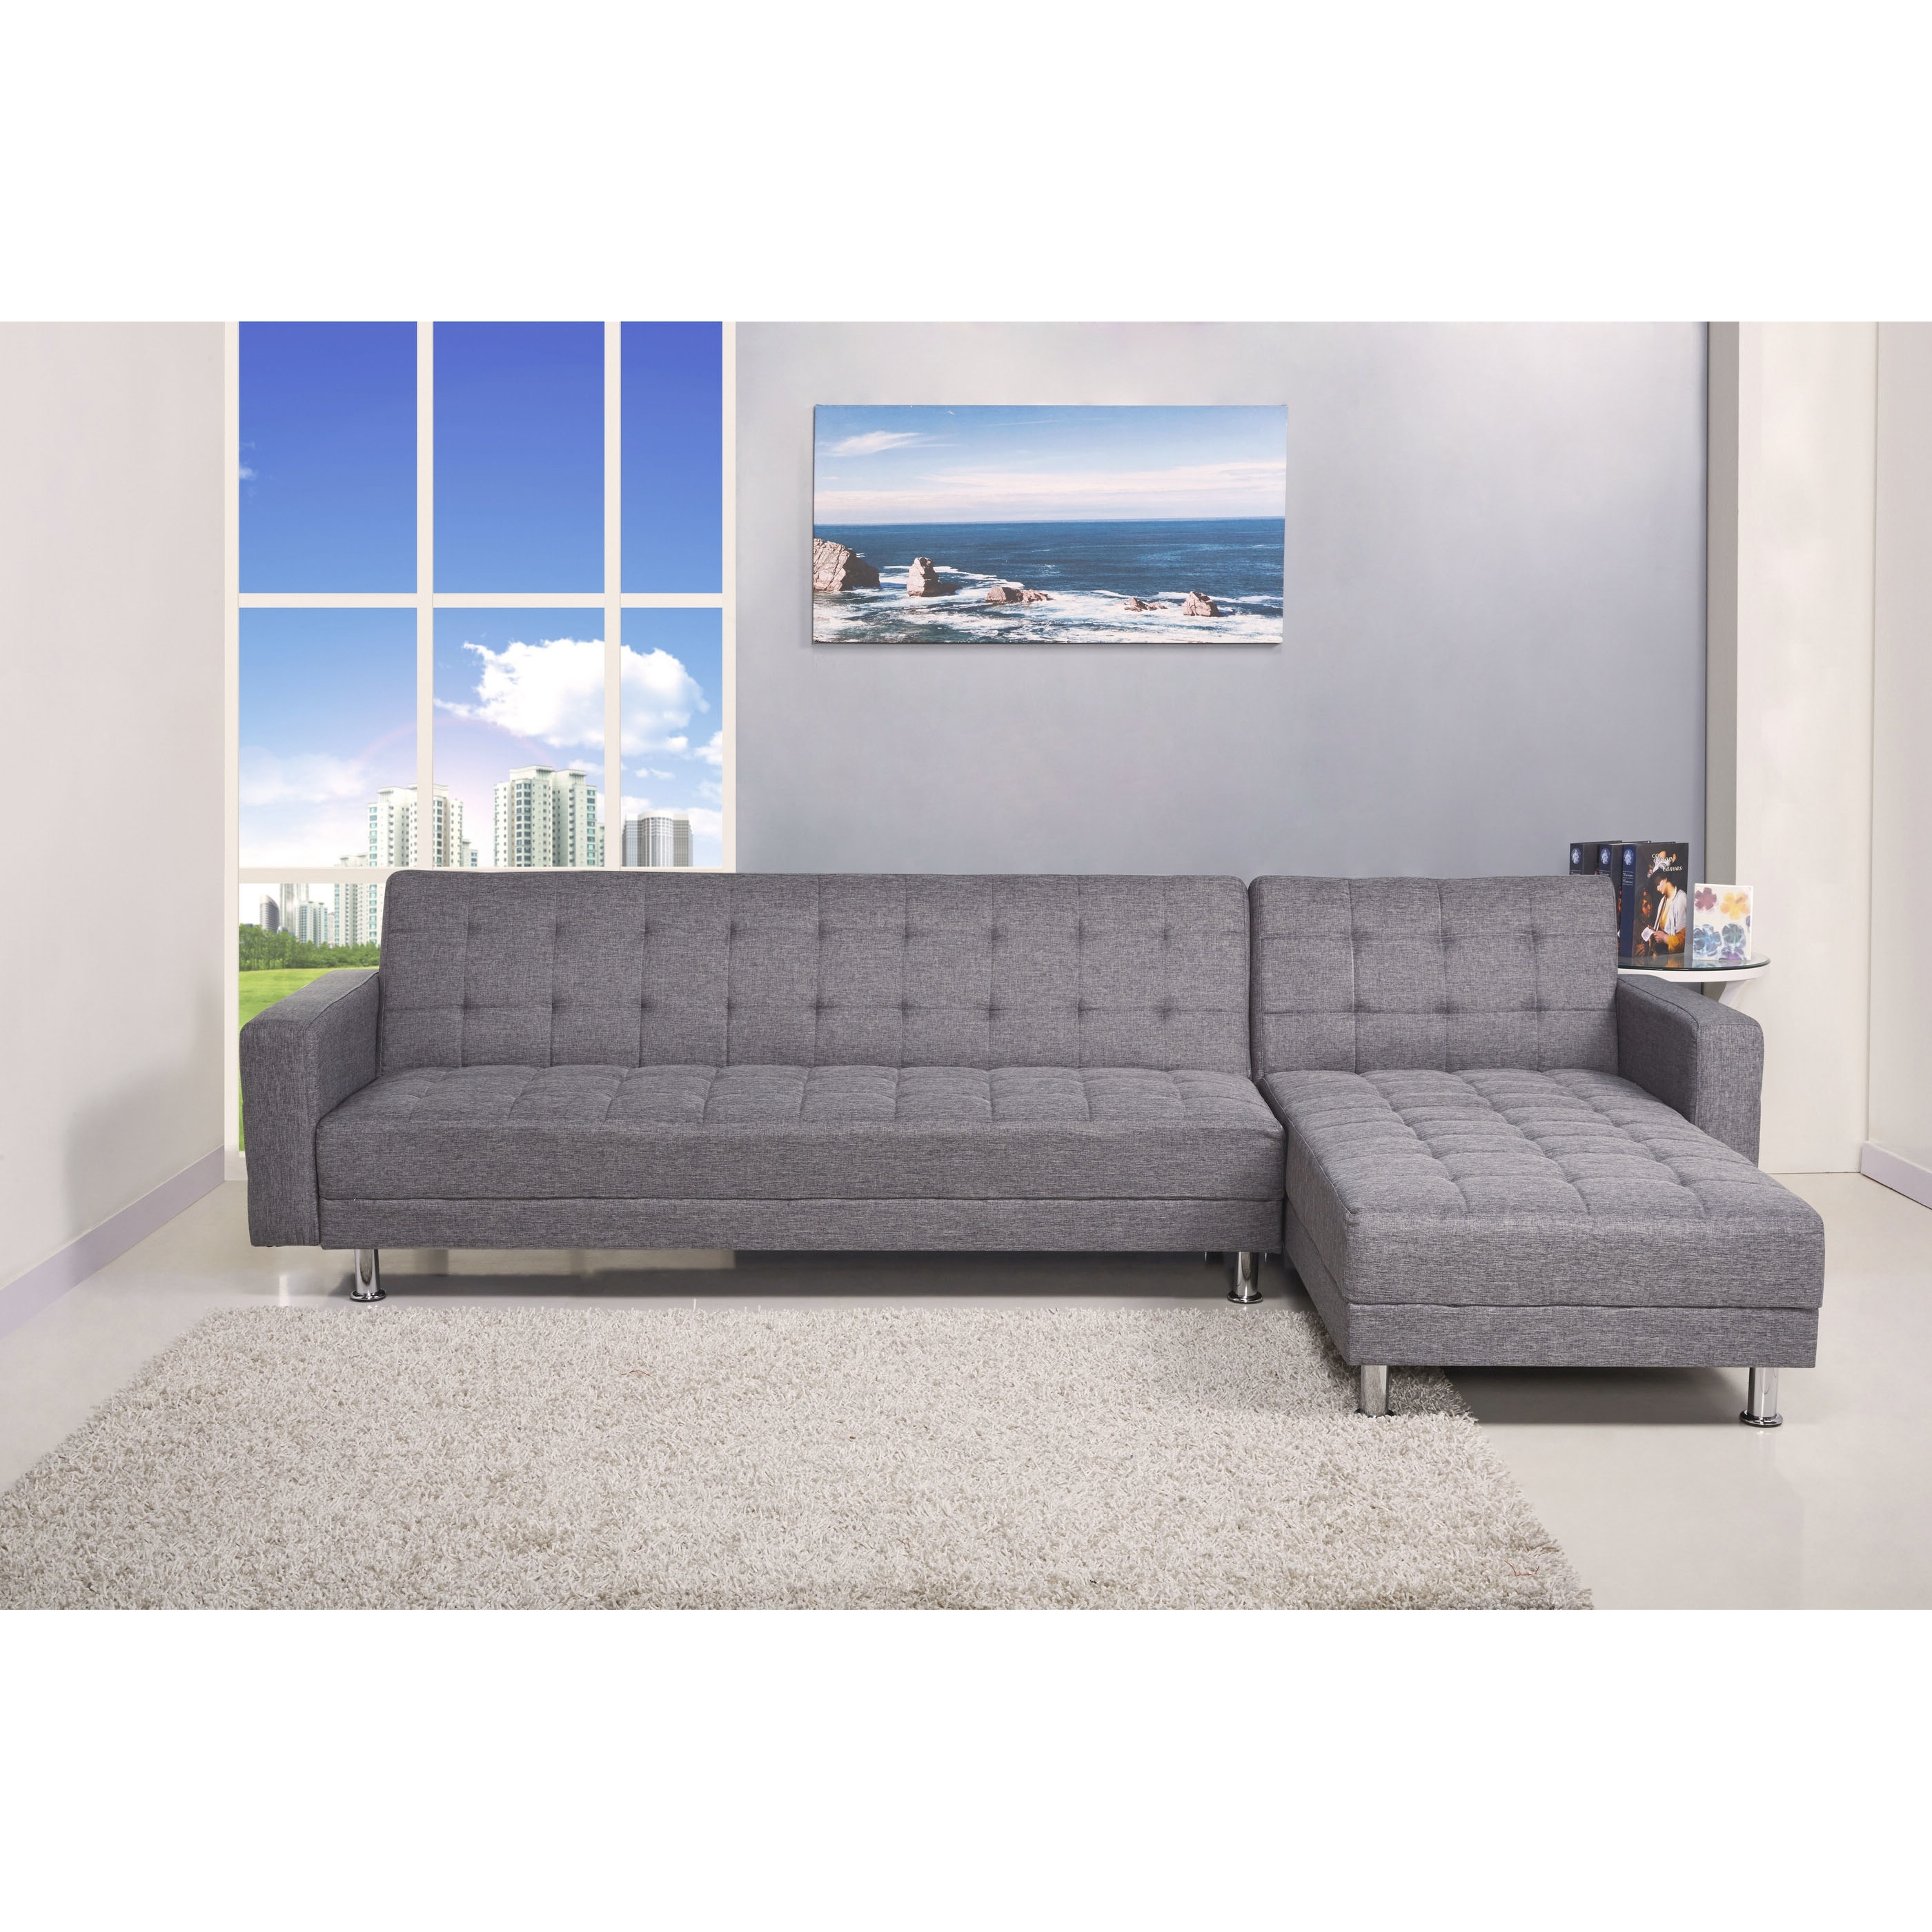 Ikea Sectional Sleeper Sofas With Best And Newest Furniture & Rug: Sectional Sleeper Sofa (View 13 of 20)